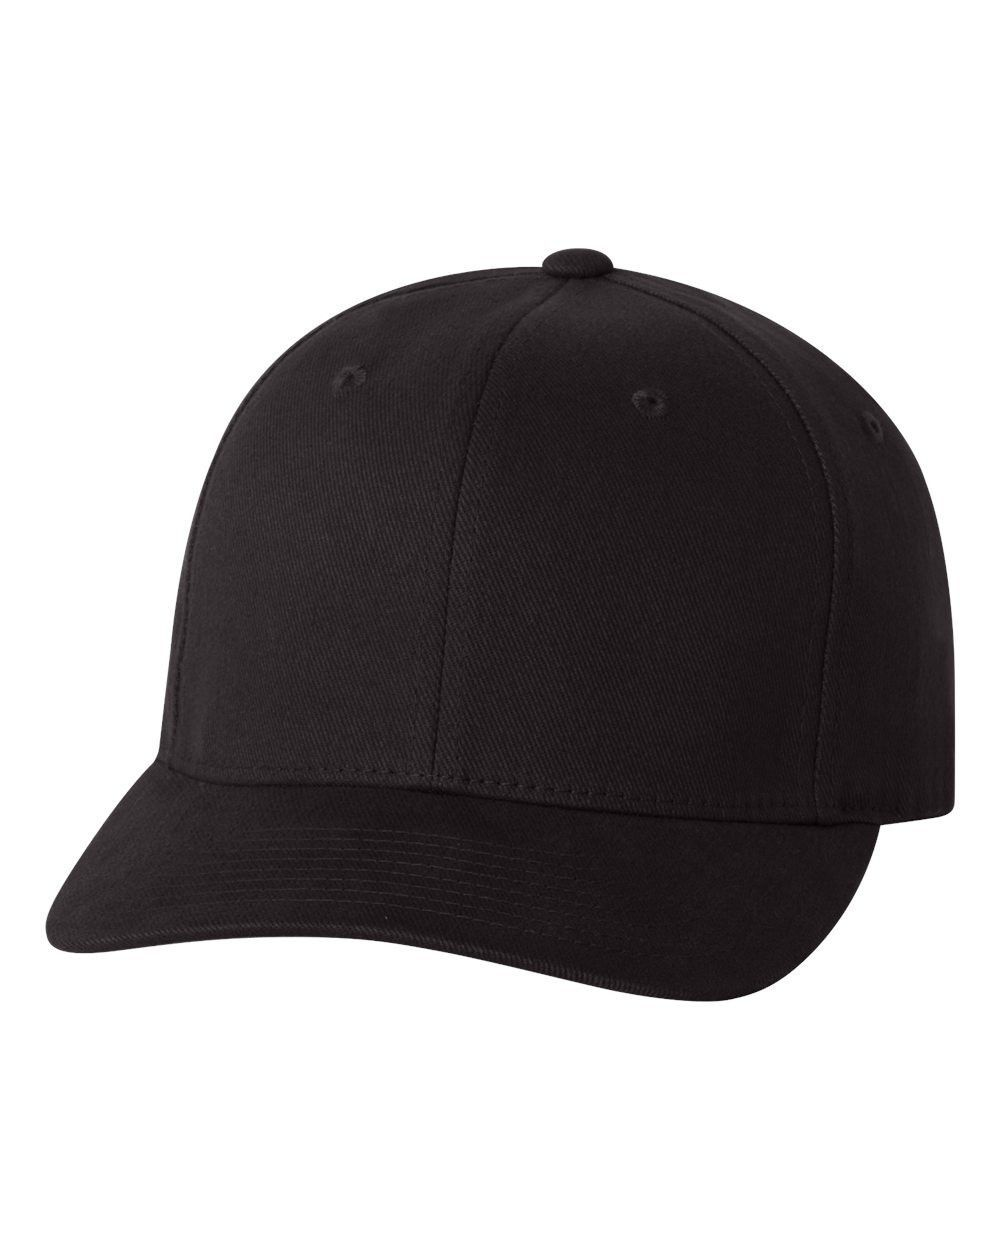 a2aed0ce460 Flexfit - Structured Brushed Twill Cap - 6377